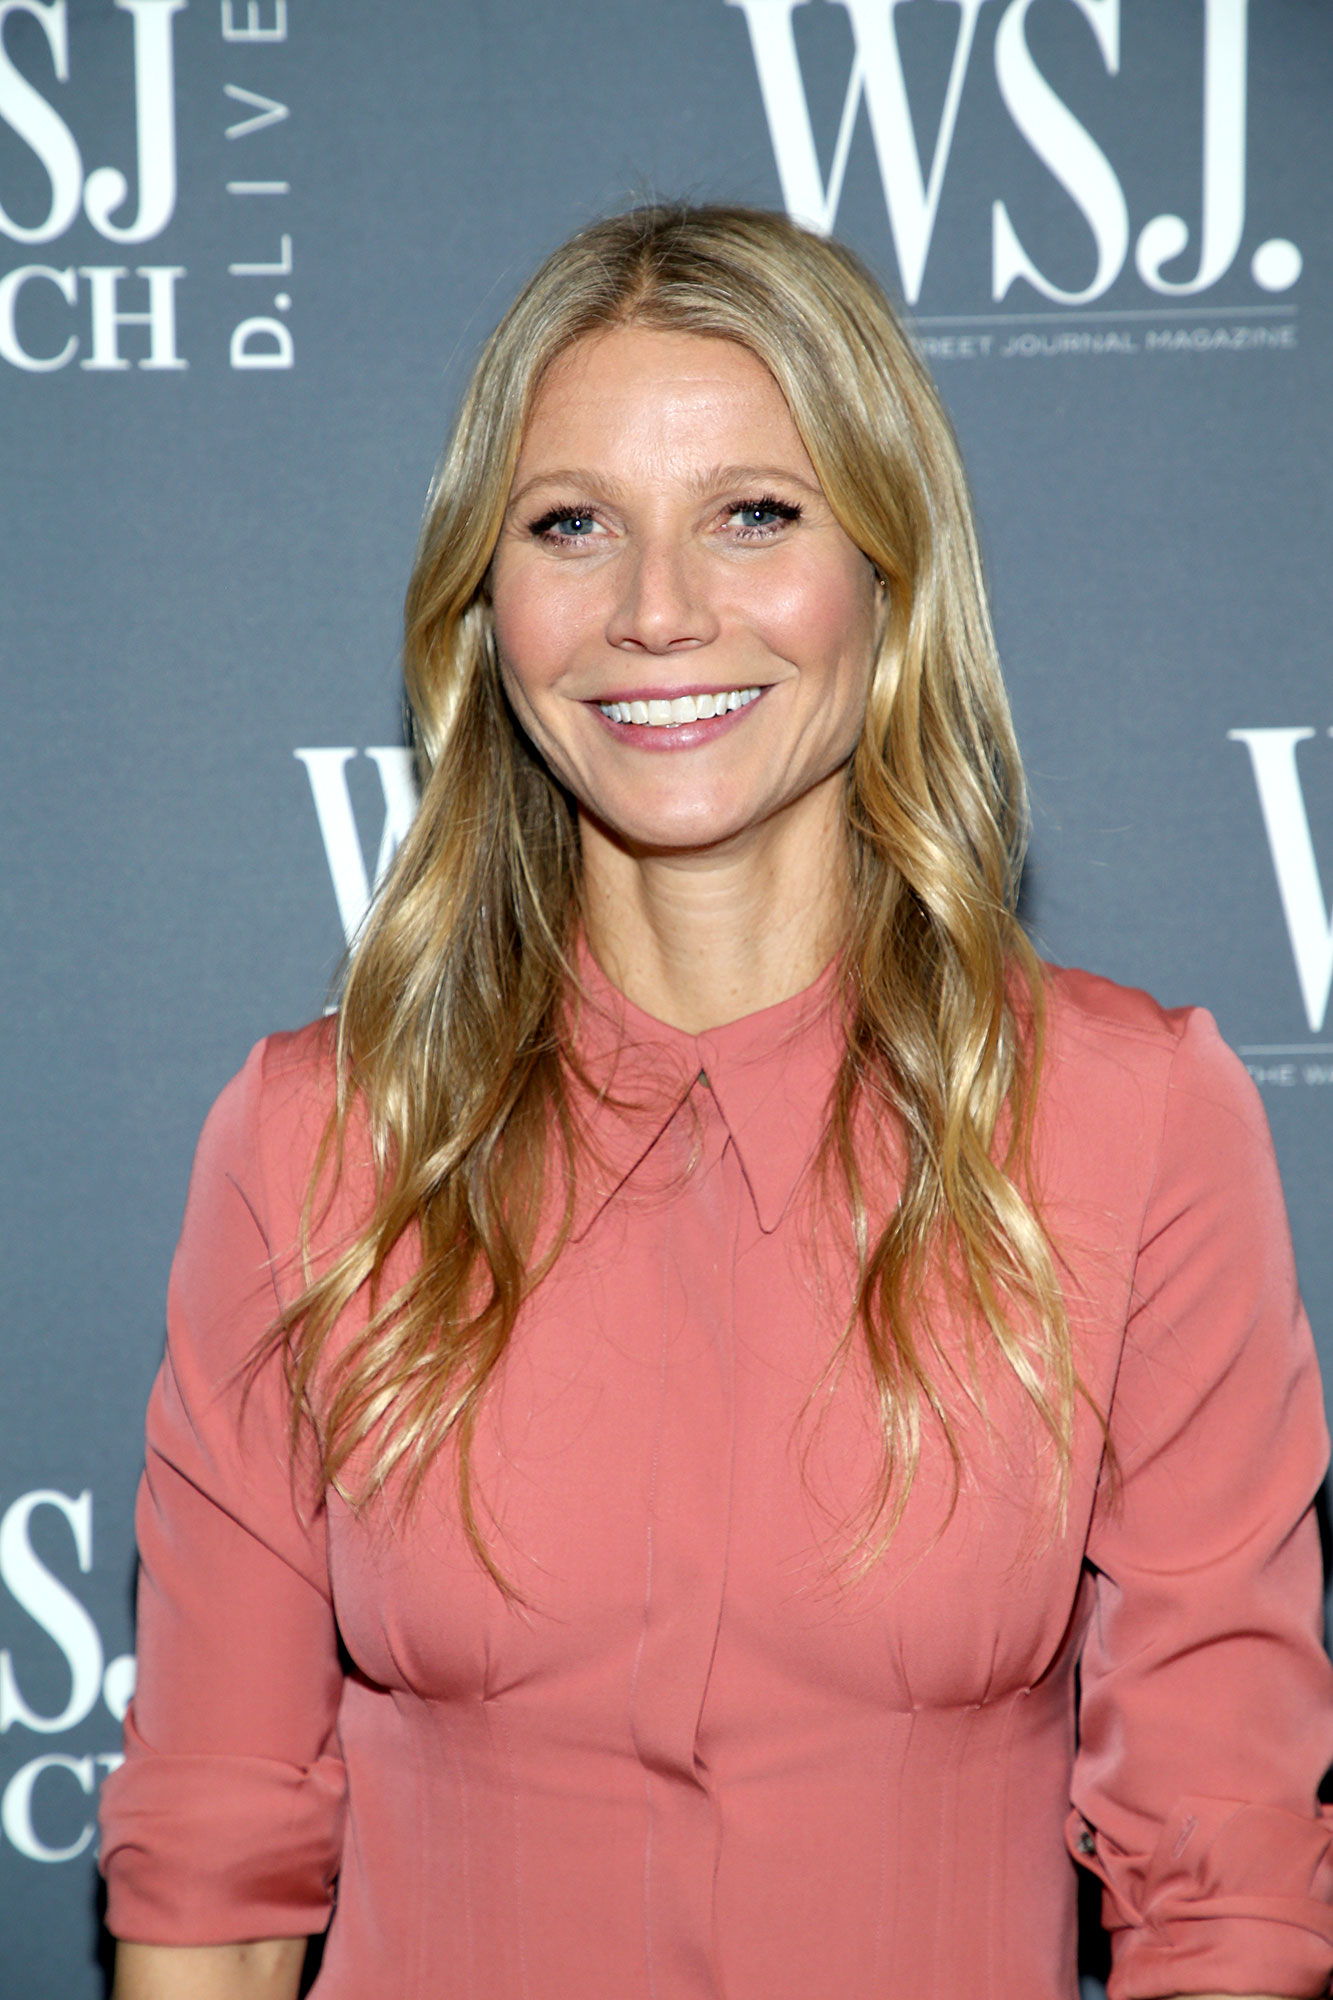 Gwyneth Paltrow Initially Turned Down 'Shakespeare in Love' After 'Terrible Breakup' With Brad Pitt - Gwyneth Paltrow attends the WSJ Tech D.Live at Montage Laguna Beach on November 13, 2018 in Laguna Beach, California.